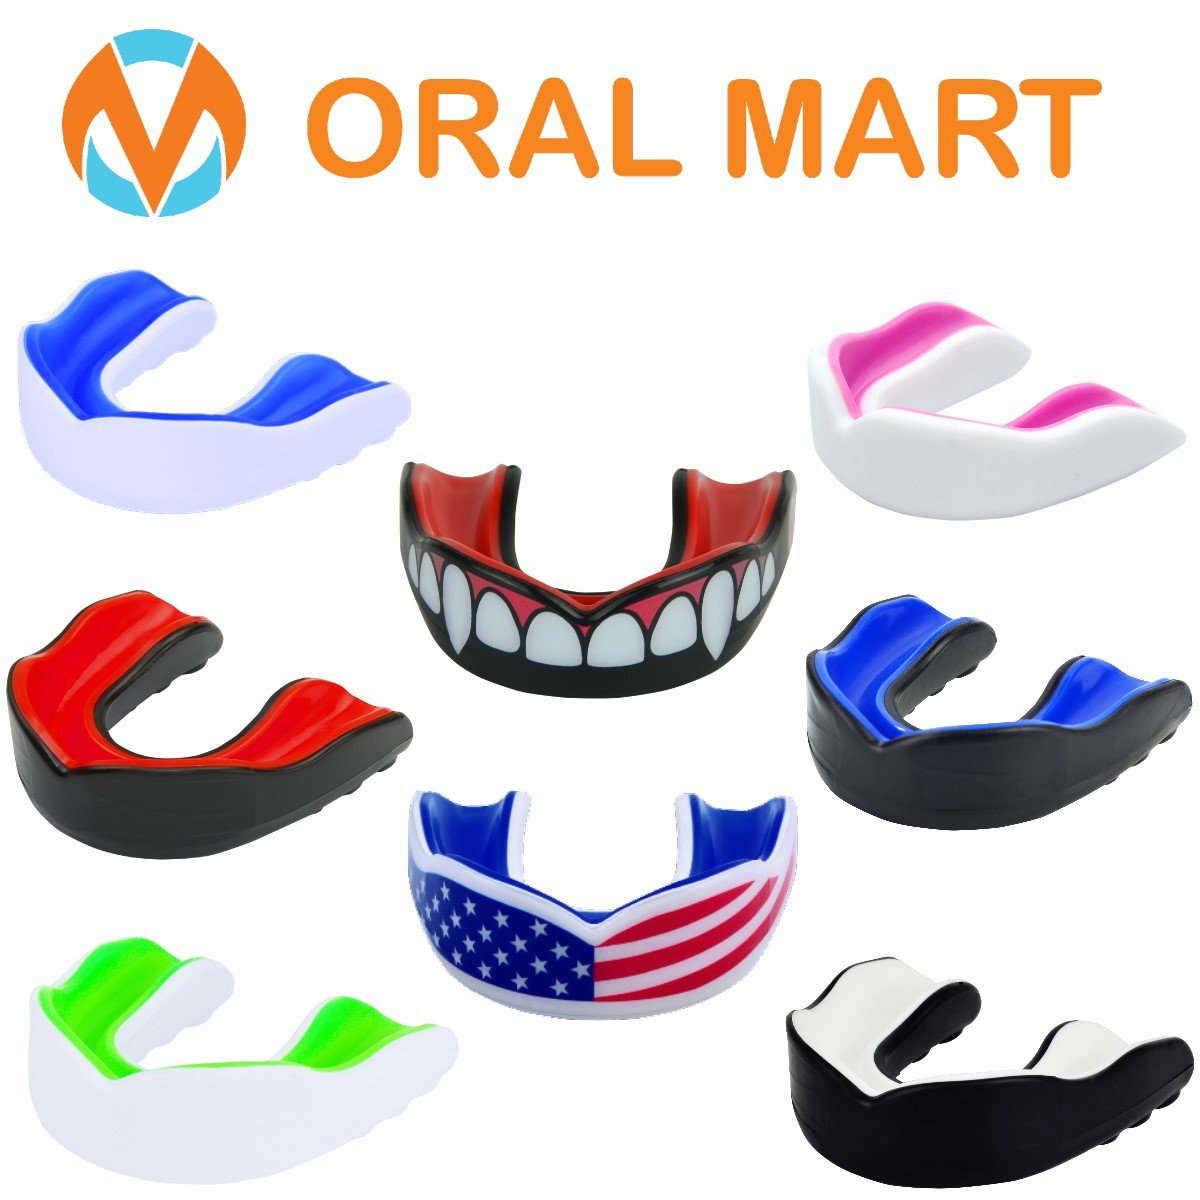 Martial Arts - Sports Mouthguard for Karate Boxing Rugby 12 Best Colors /& Vampire Fangs Hockey Oral Mart Sports Gum Shield for Kids//Adults Comes with Case BJJ MMA Muay Thai